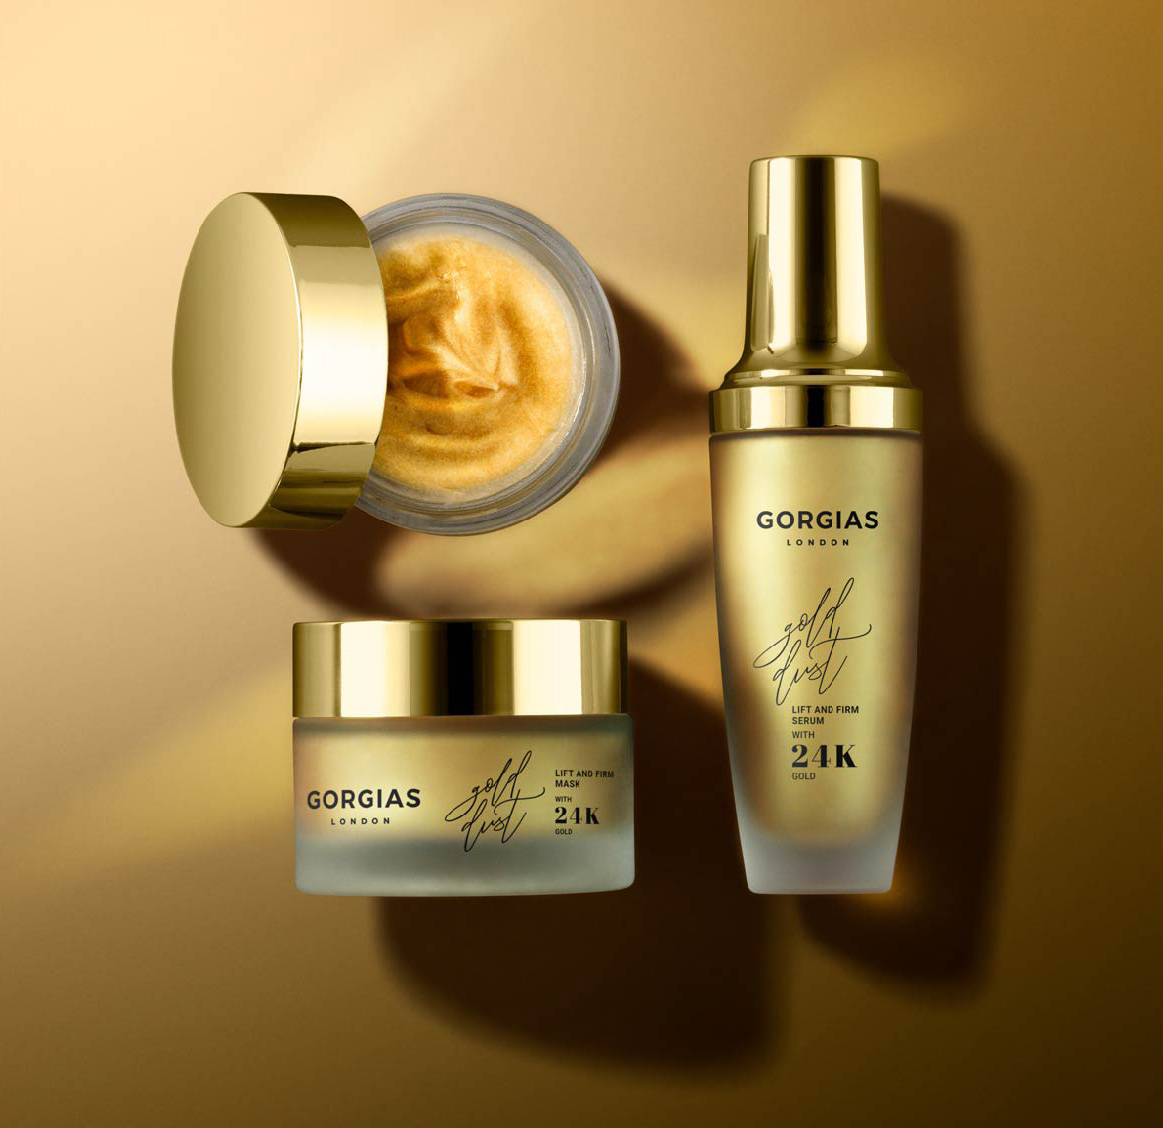 24K Gold Moisturizers and Gold Infused Skin Care Products